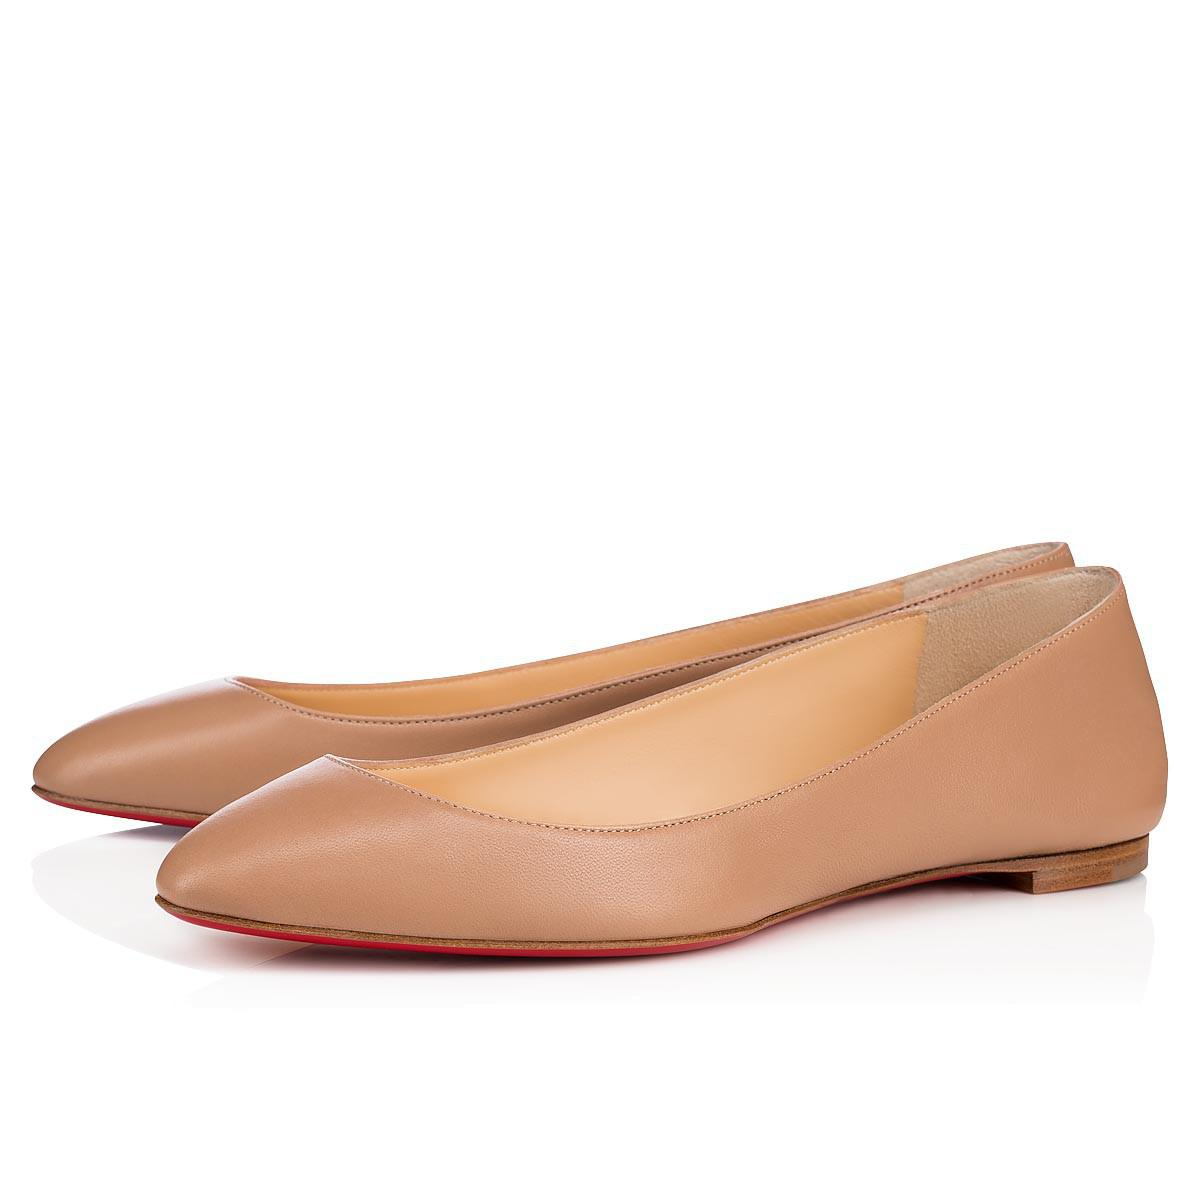 418a9516bcd5 Lyst - Christian Louboutin Eloise Nappa Nude Lambskin in Natural